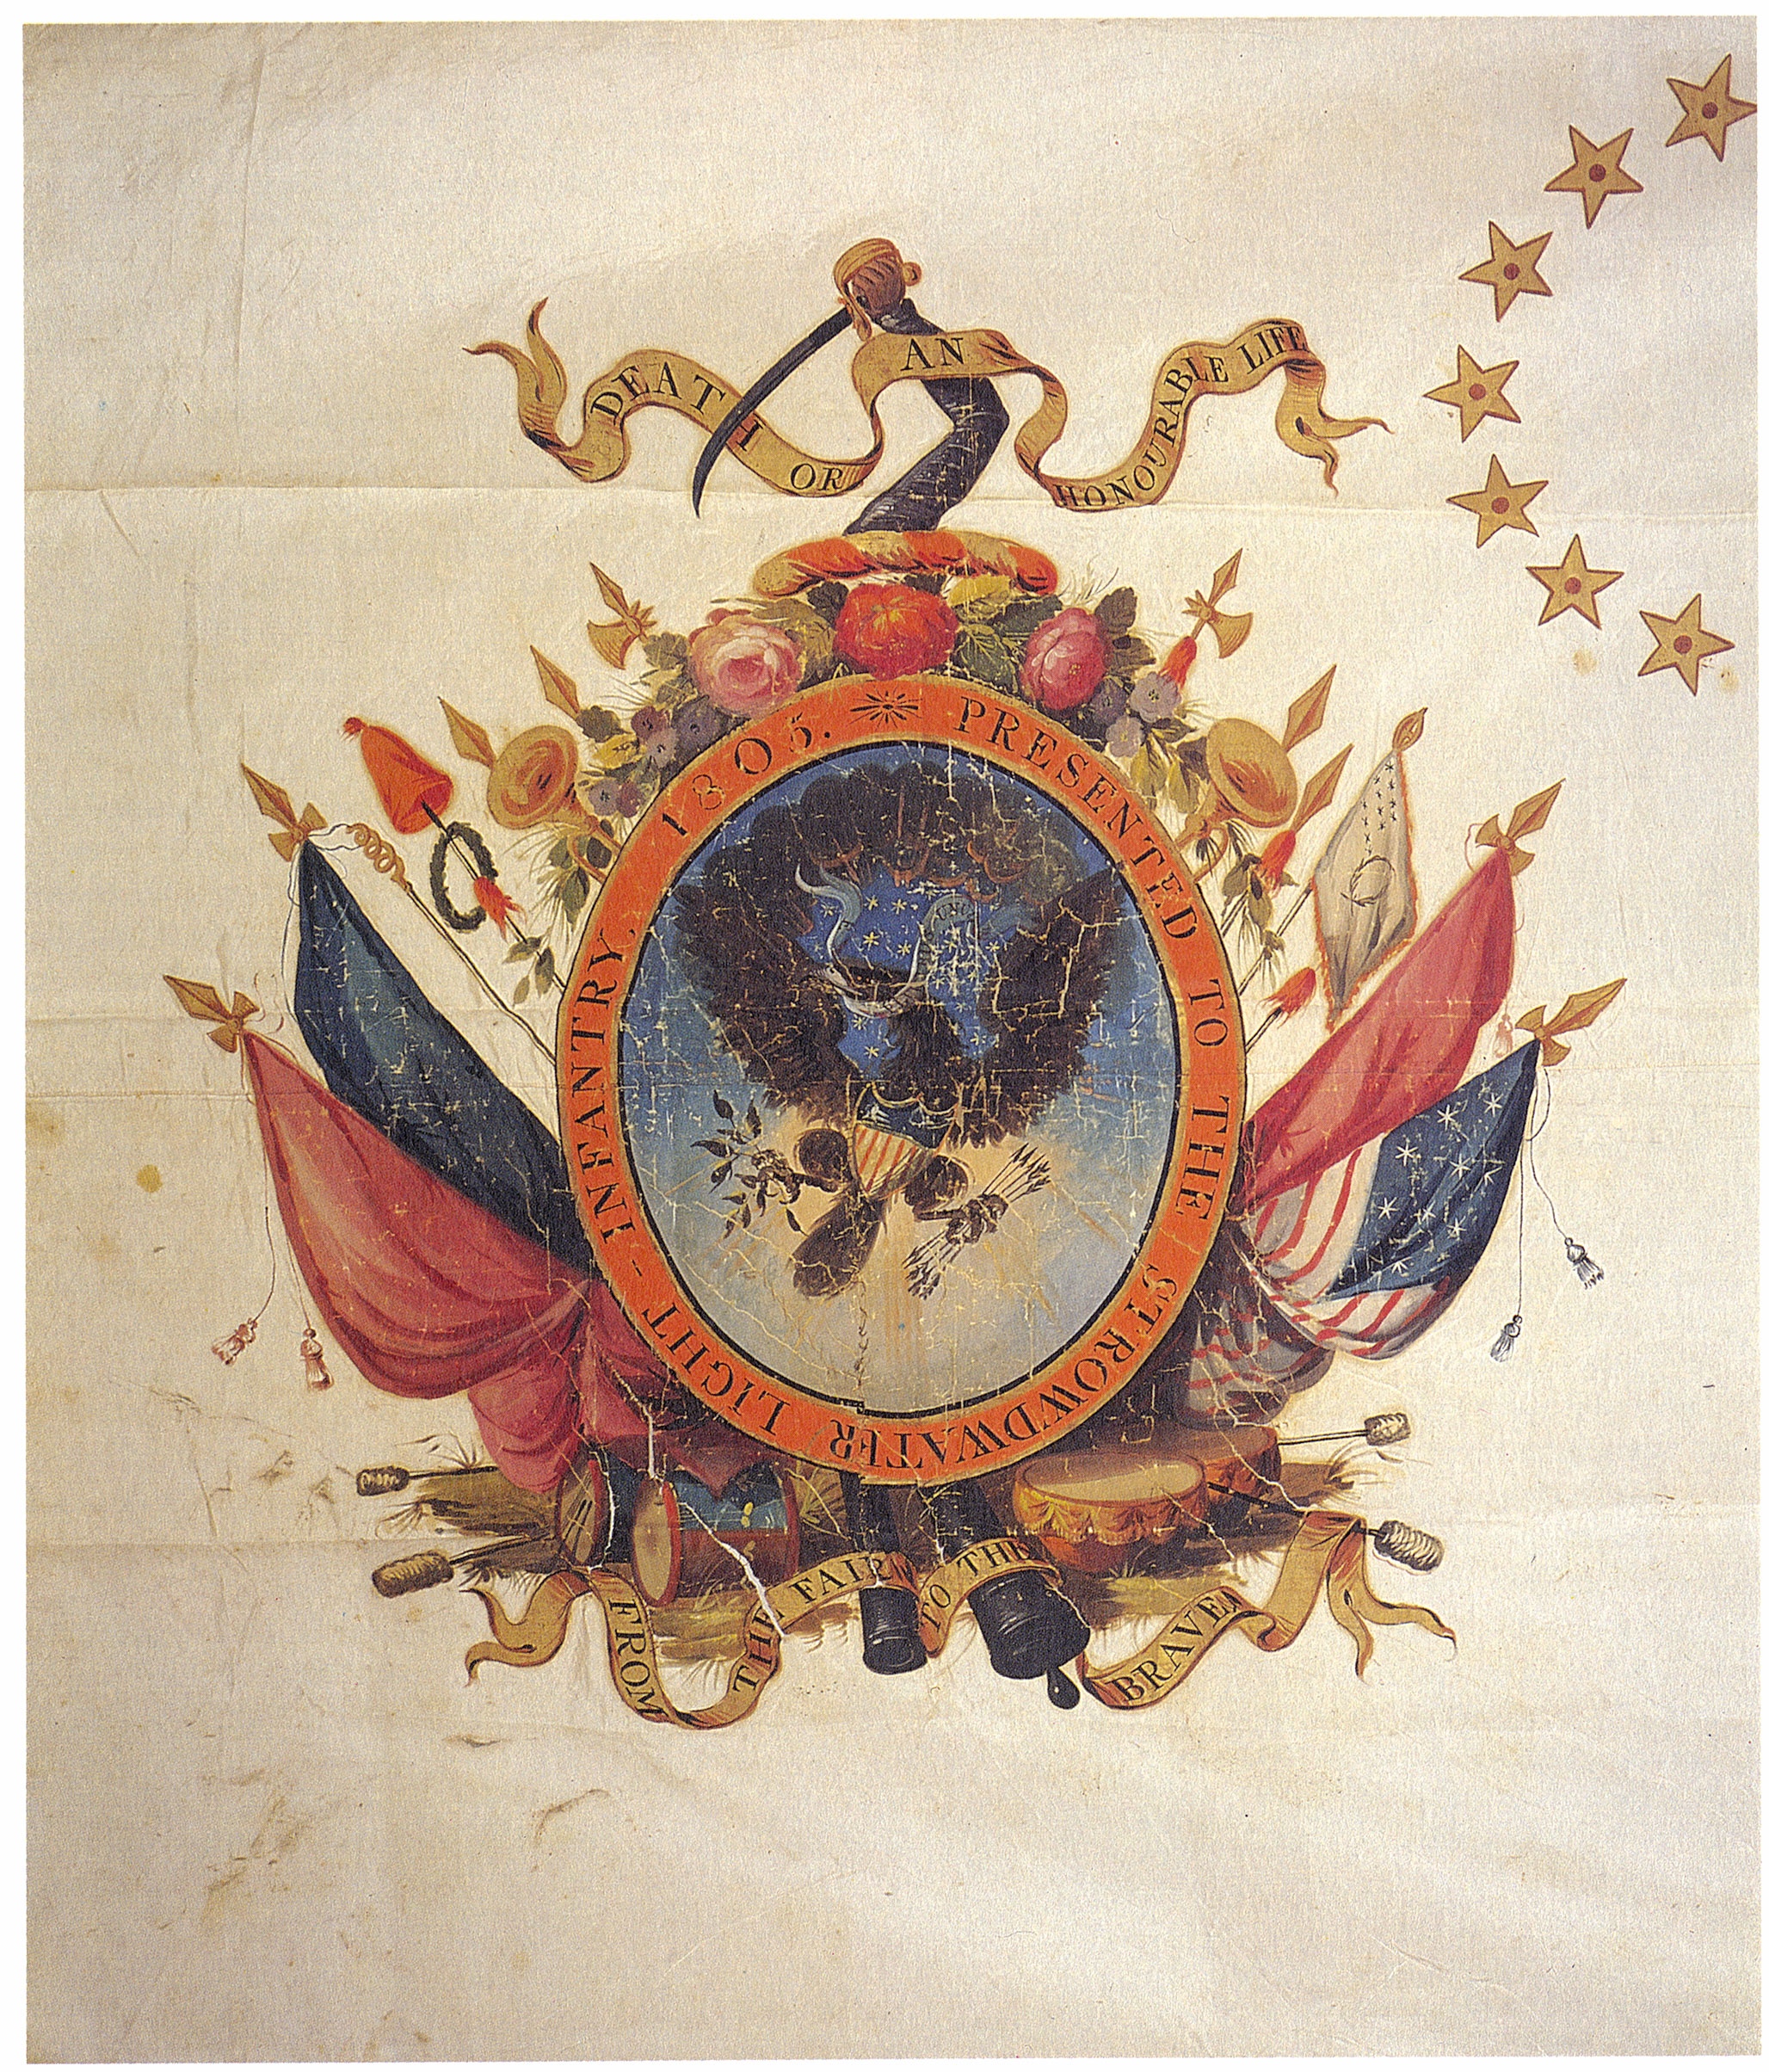 Detail, Stroudwater Light Infantry Company banner. 1805